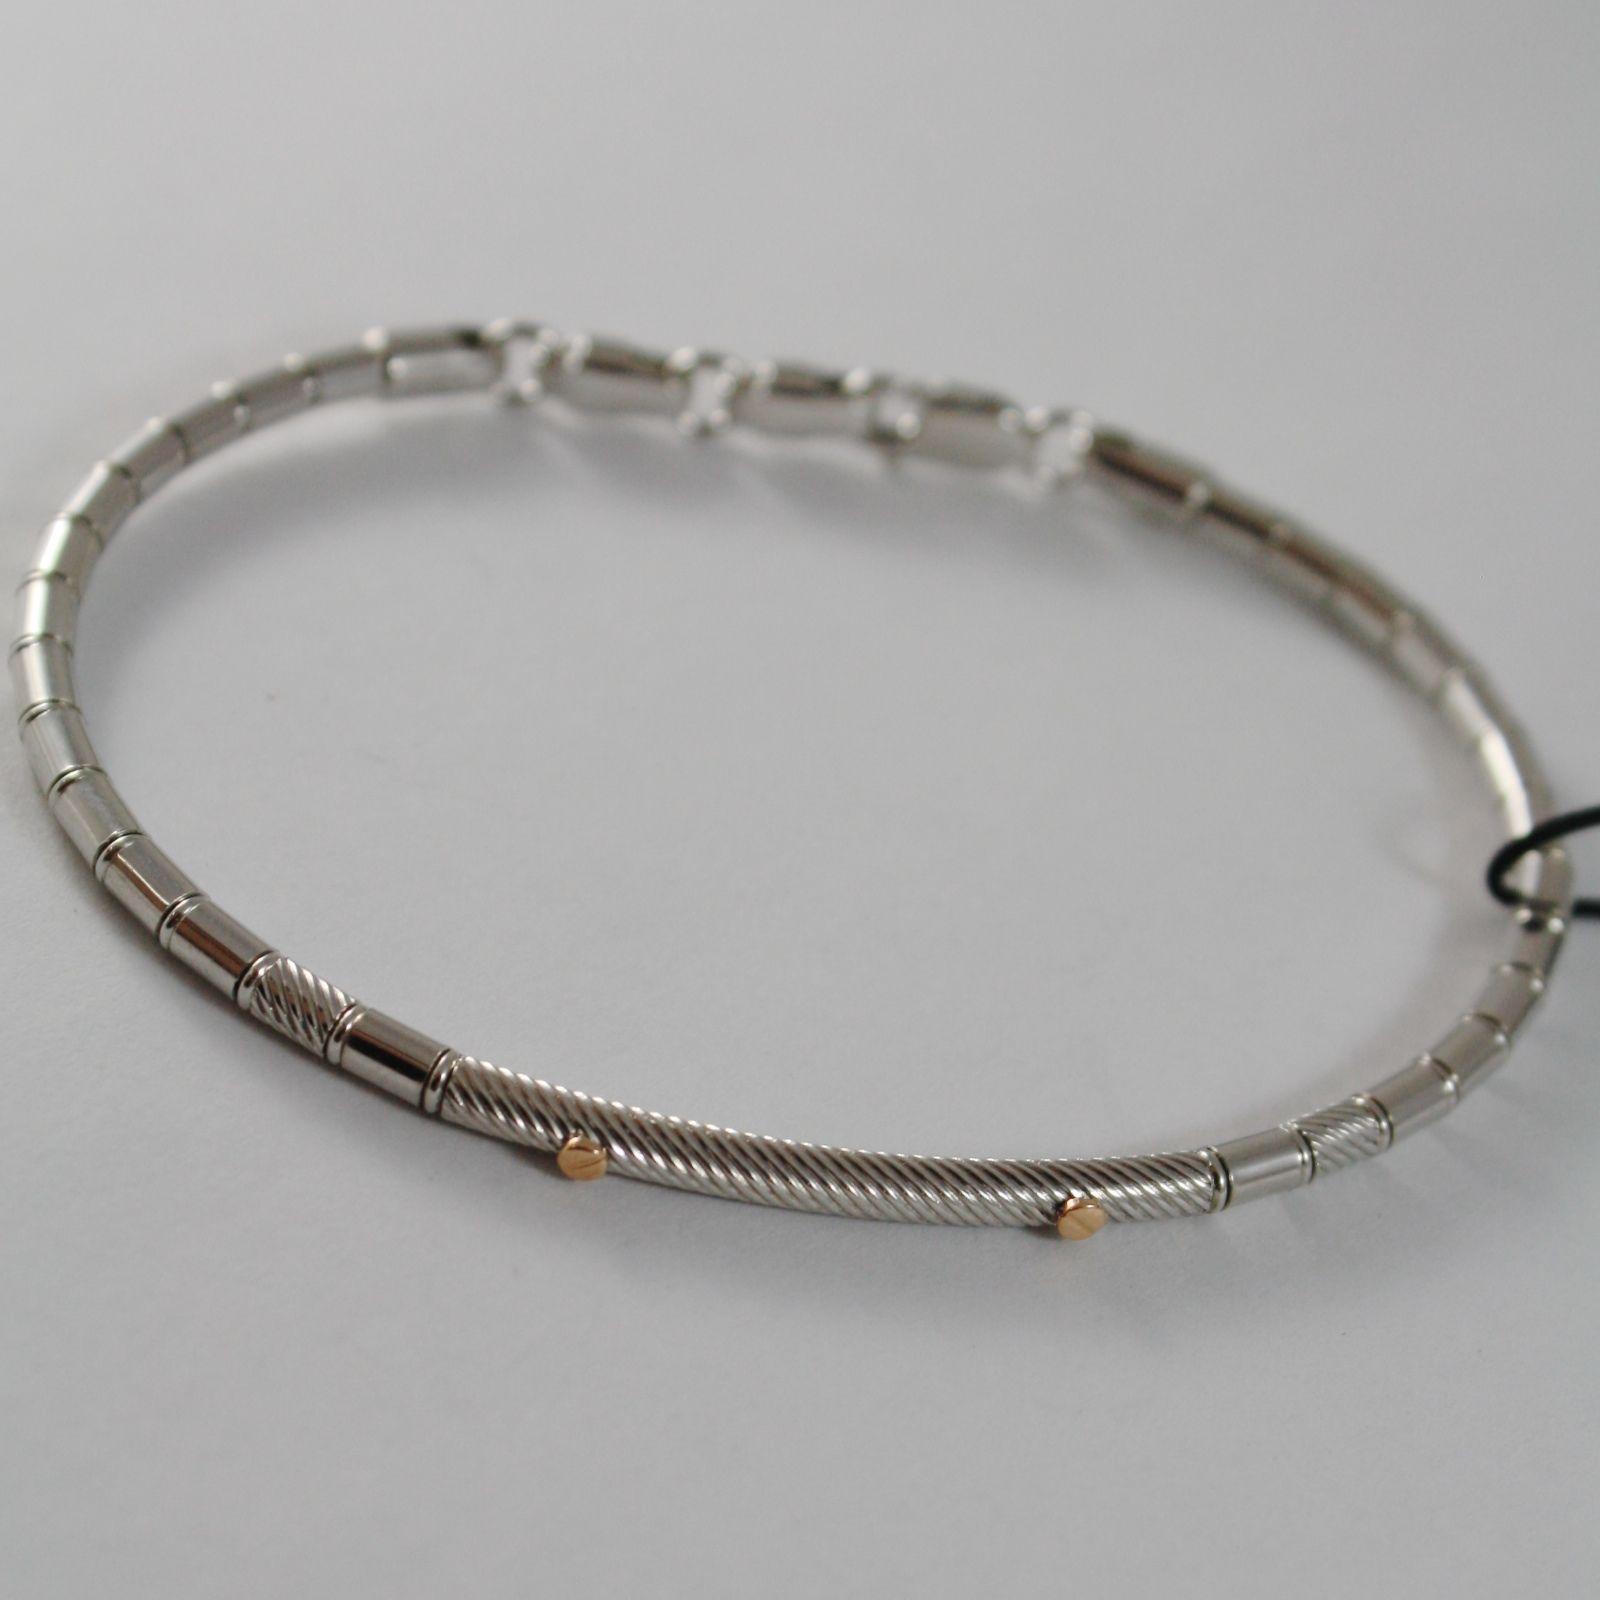 ZANCAN BRACELET, TUBE BANGLE, 18k ROSE GOLD, 925 STERLING SILVER MADE IN ITALY